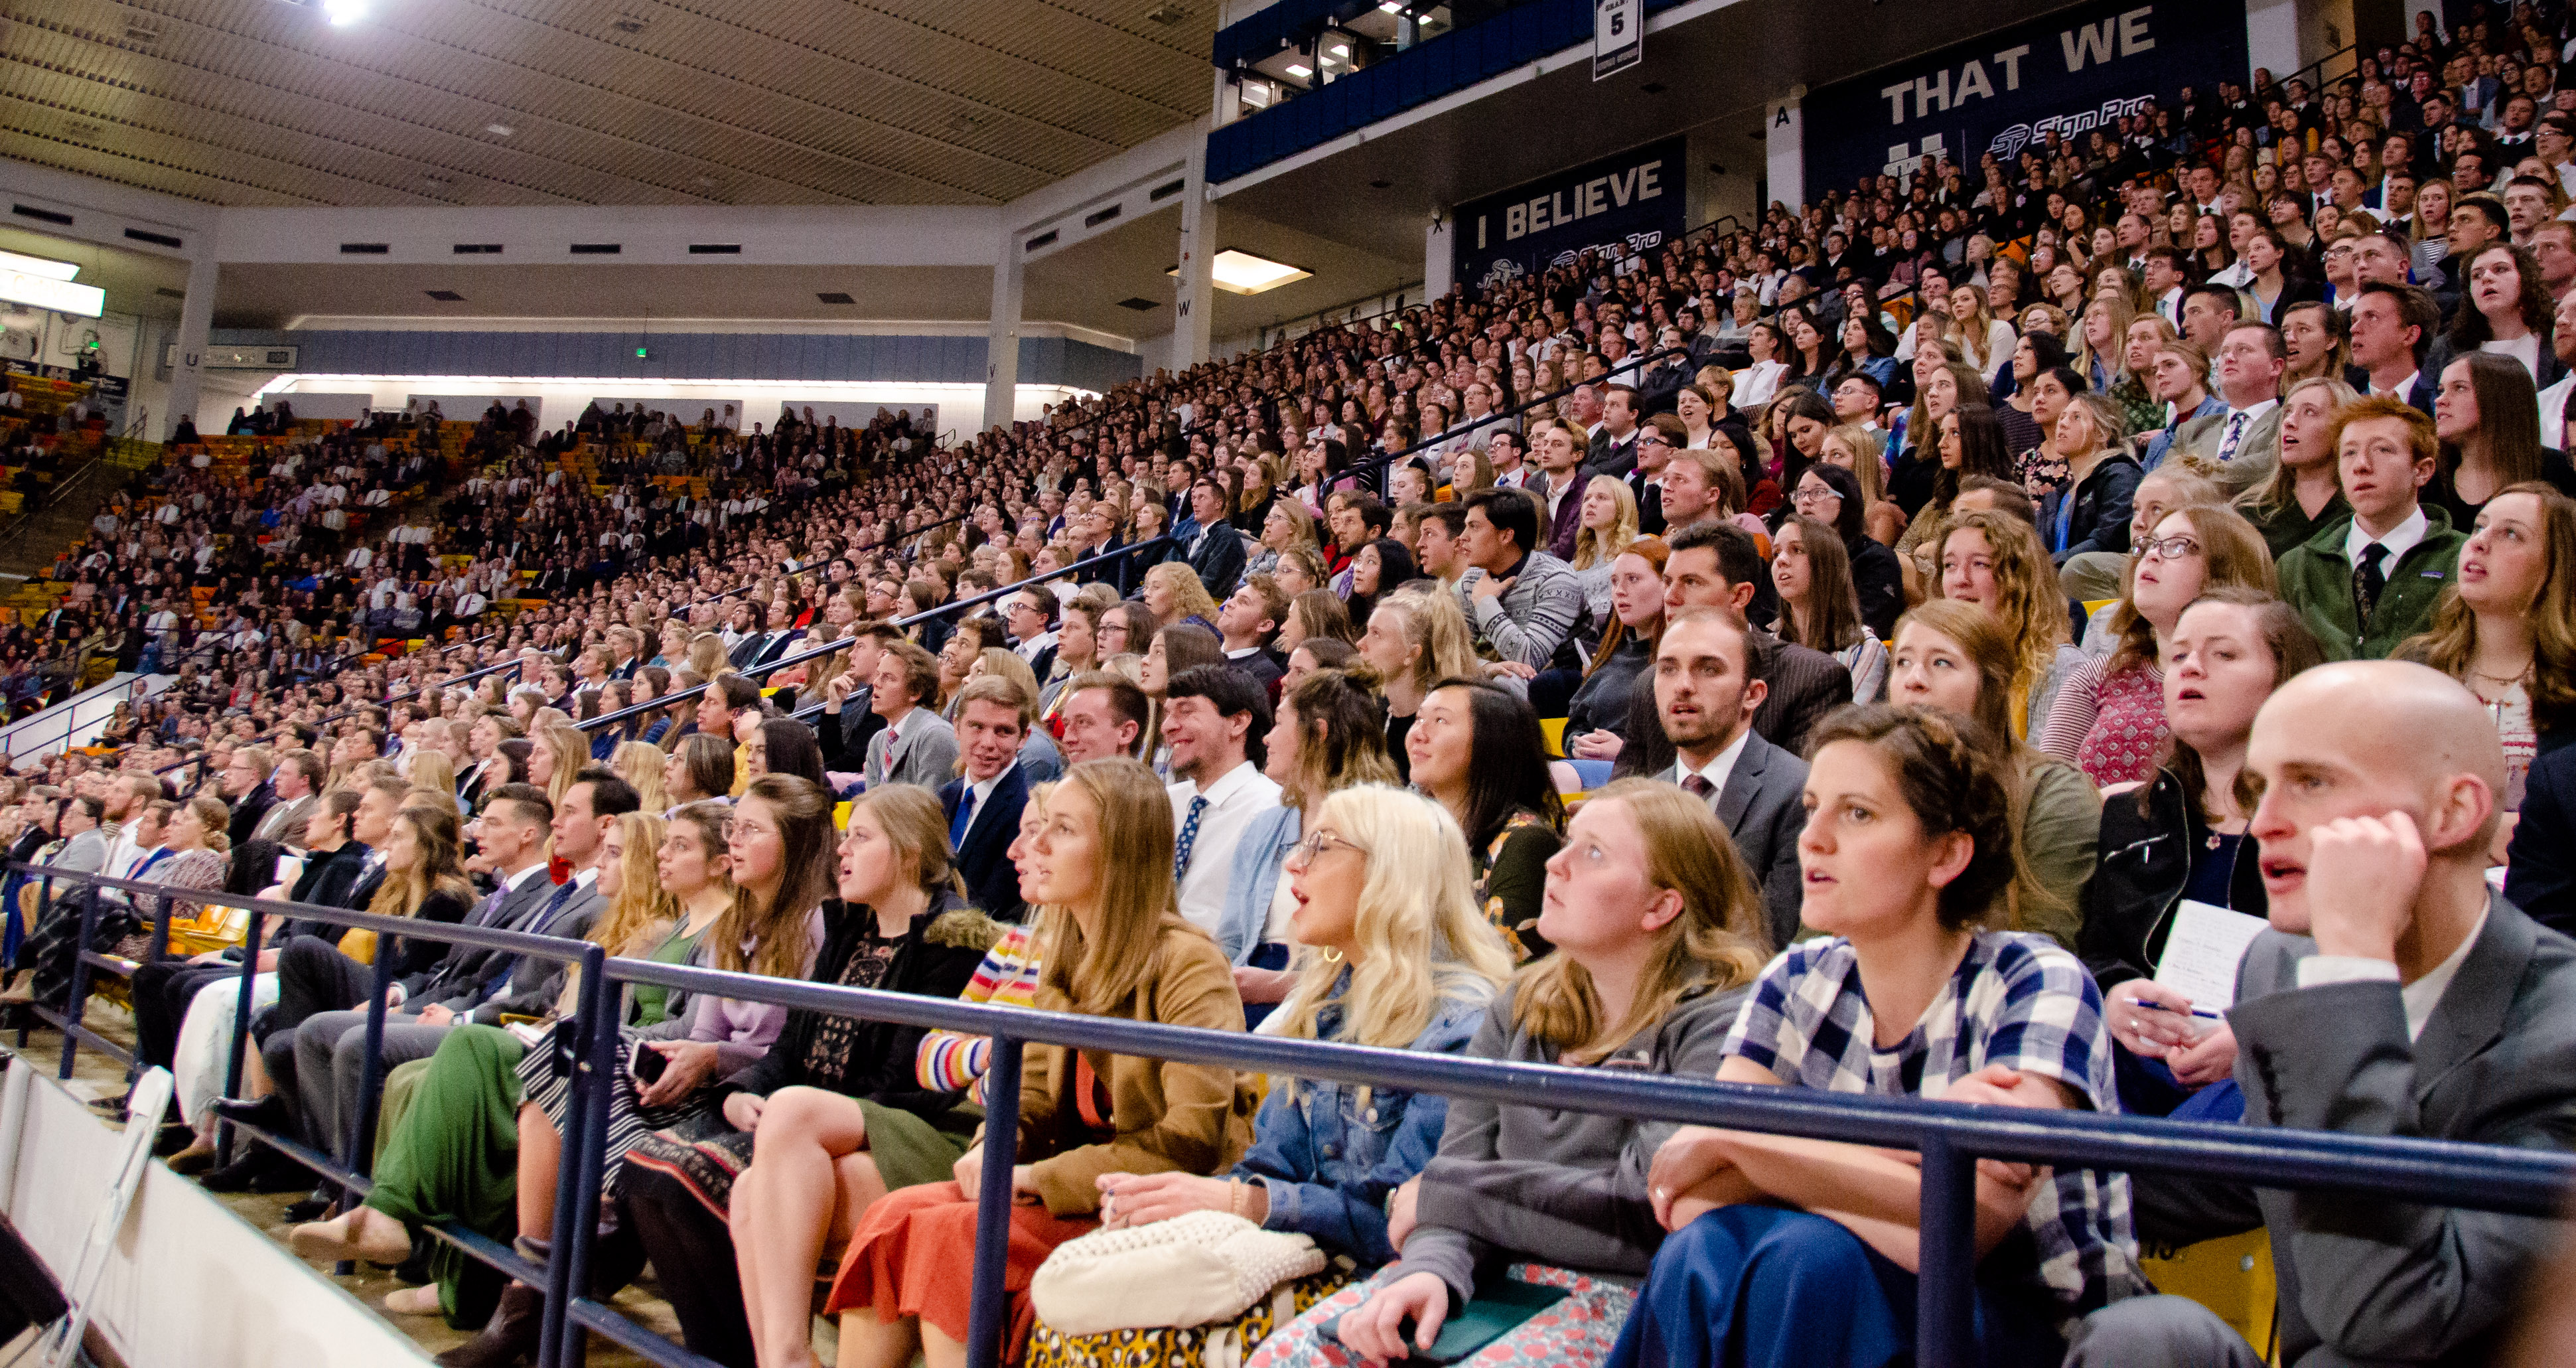 Attendees at the Dee Glen Smith Spectrum at Utah State University sing a hymn during a devotional with Sister Sharon Eubank on Sunday, Nov. 3, 2019, in Logan, Utah.